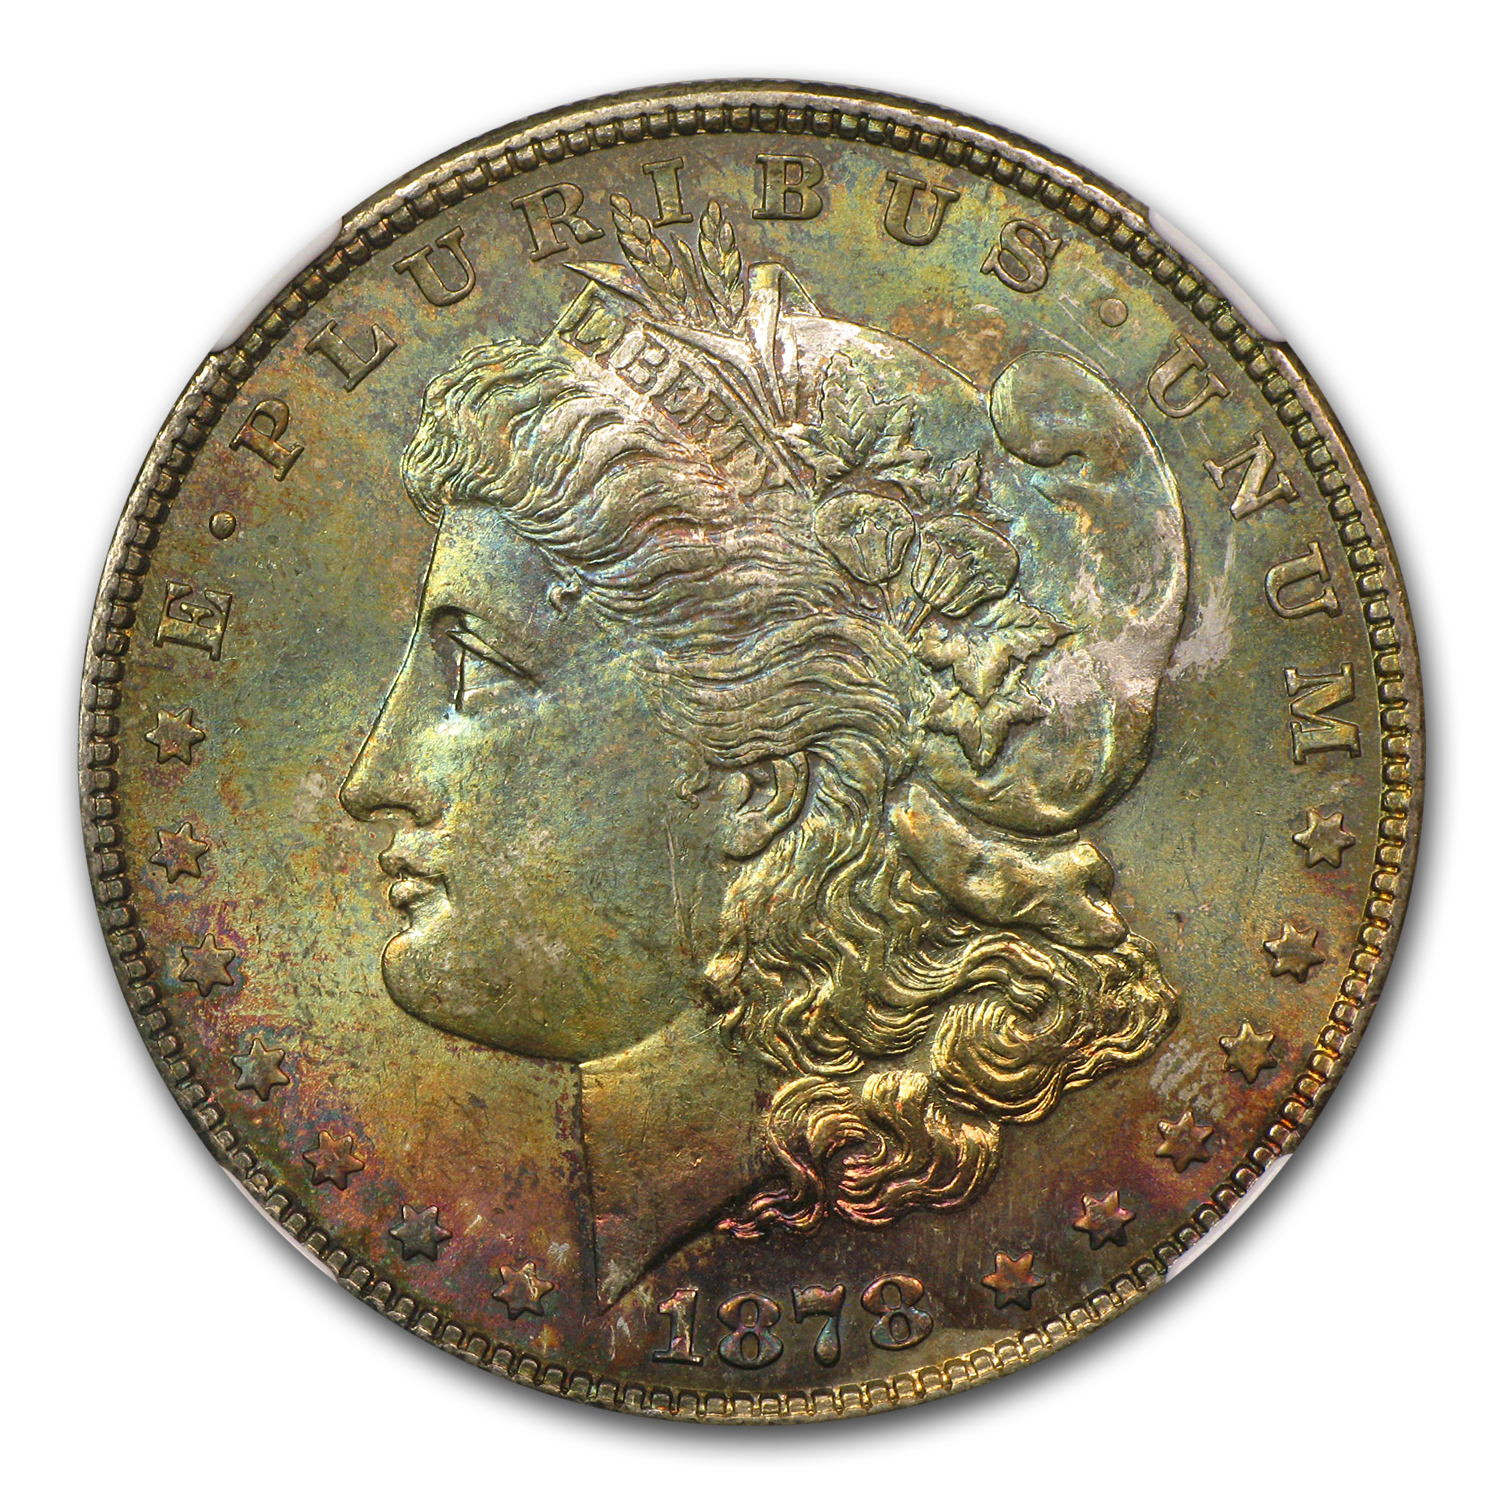 1878 Morgan Dollar - 7 Tailfeathers Rev. of 78 MS-64 NGC - Toned